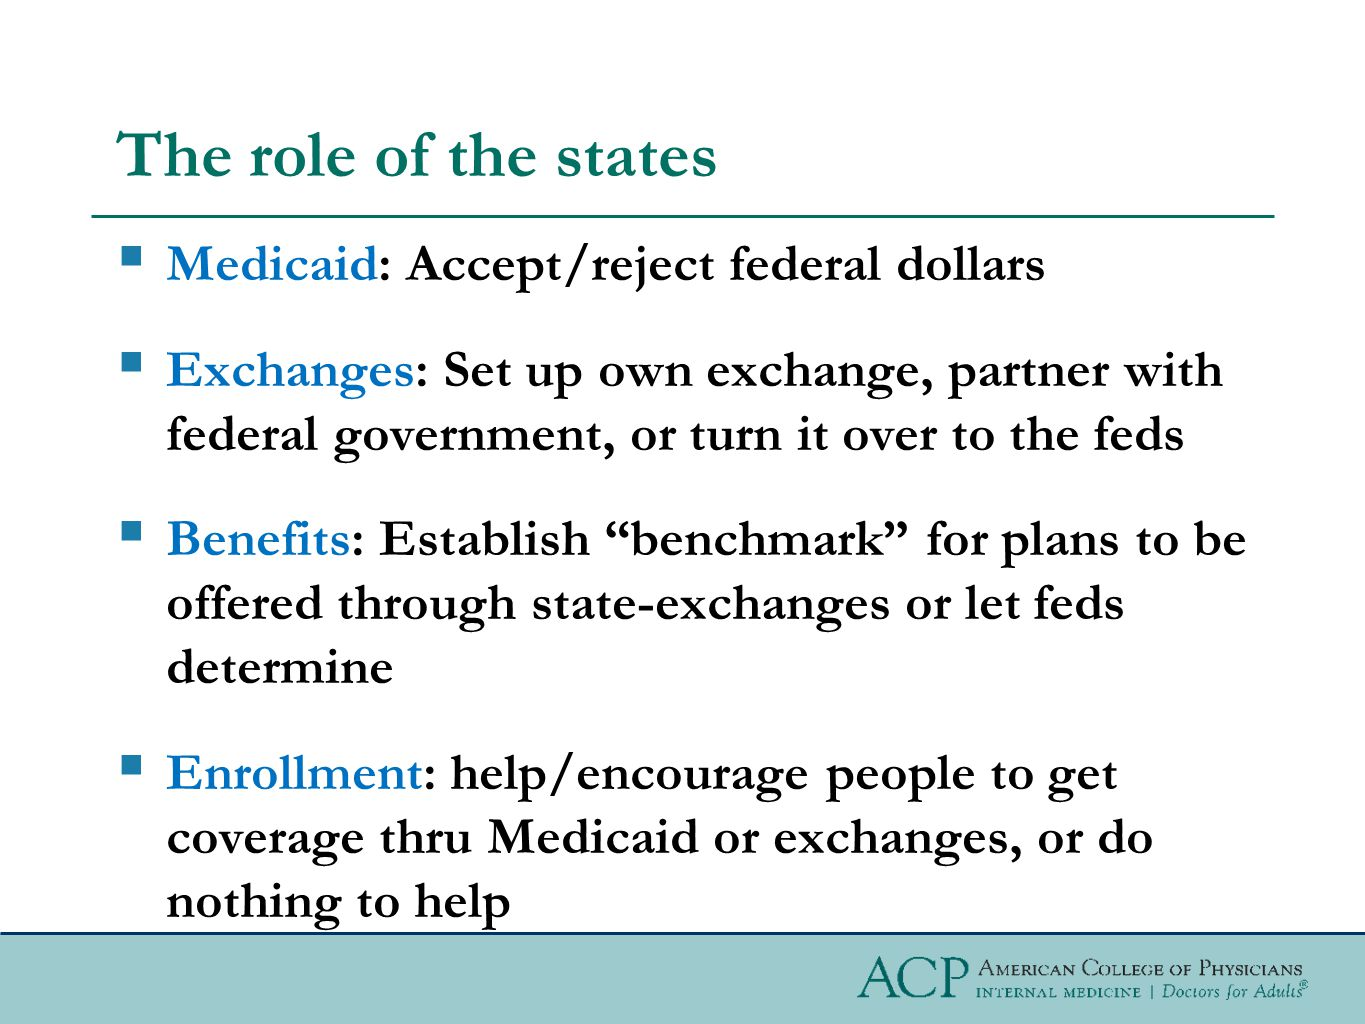 The role of the states  Medicaid: Accept/reject federal dollars  Exchanges: Set up own exchange, partner with federal government, or turn it over to the feds  Benefits: Establish benchmark for plans to be offered through state-exchanges or let feds determine  Enrollment: help/encourage people to get coverage thru Medicaid or exchanges, or do nothing to help